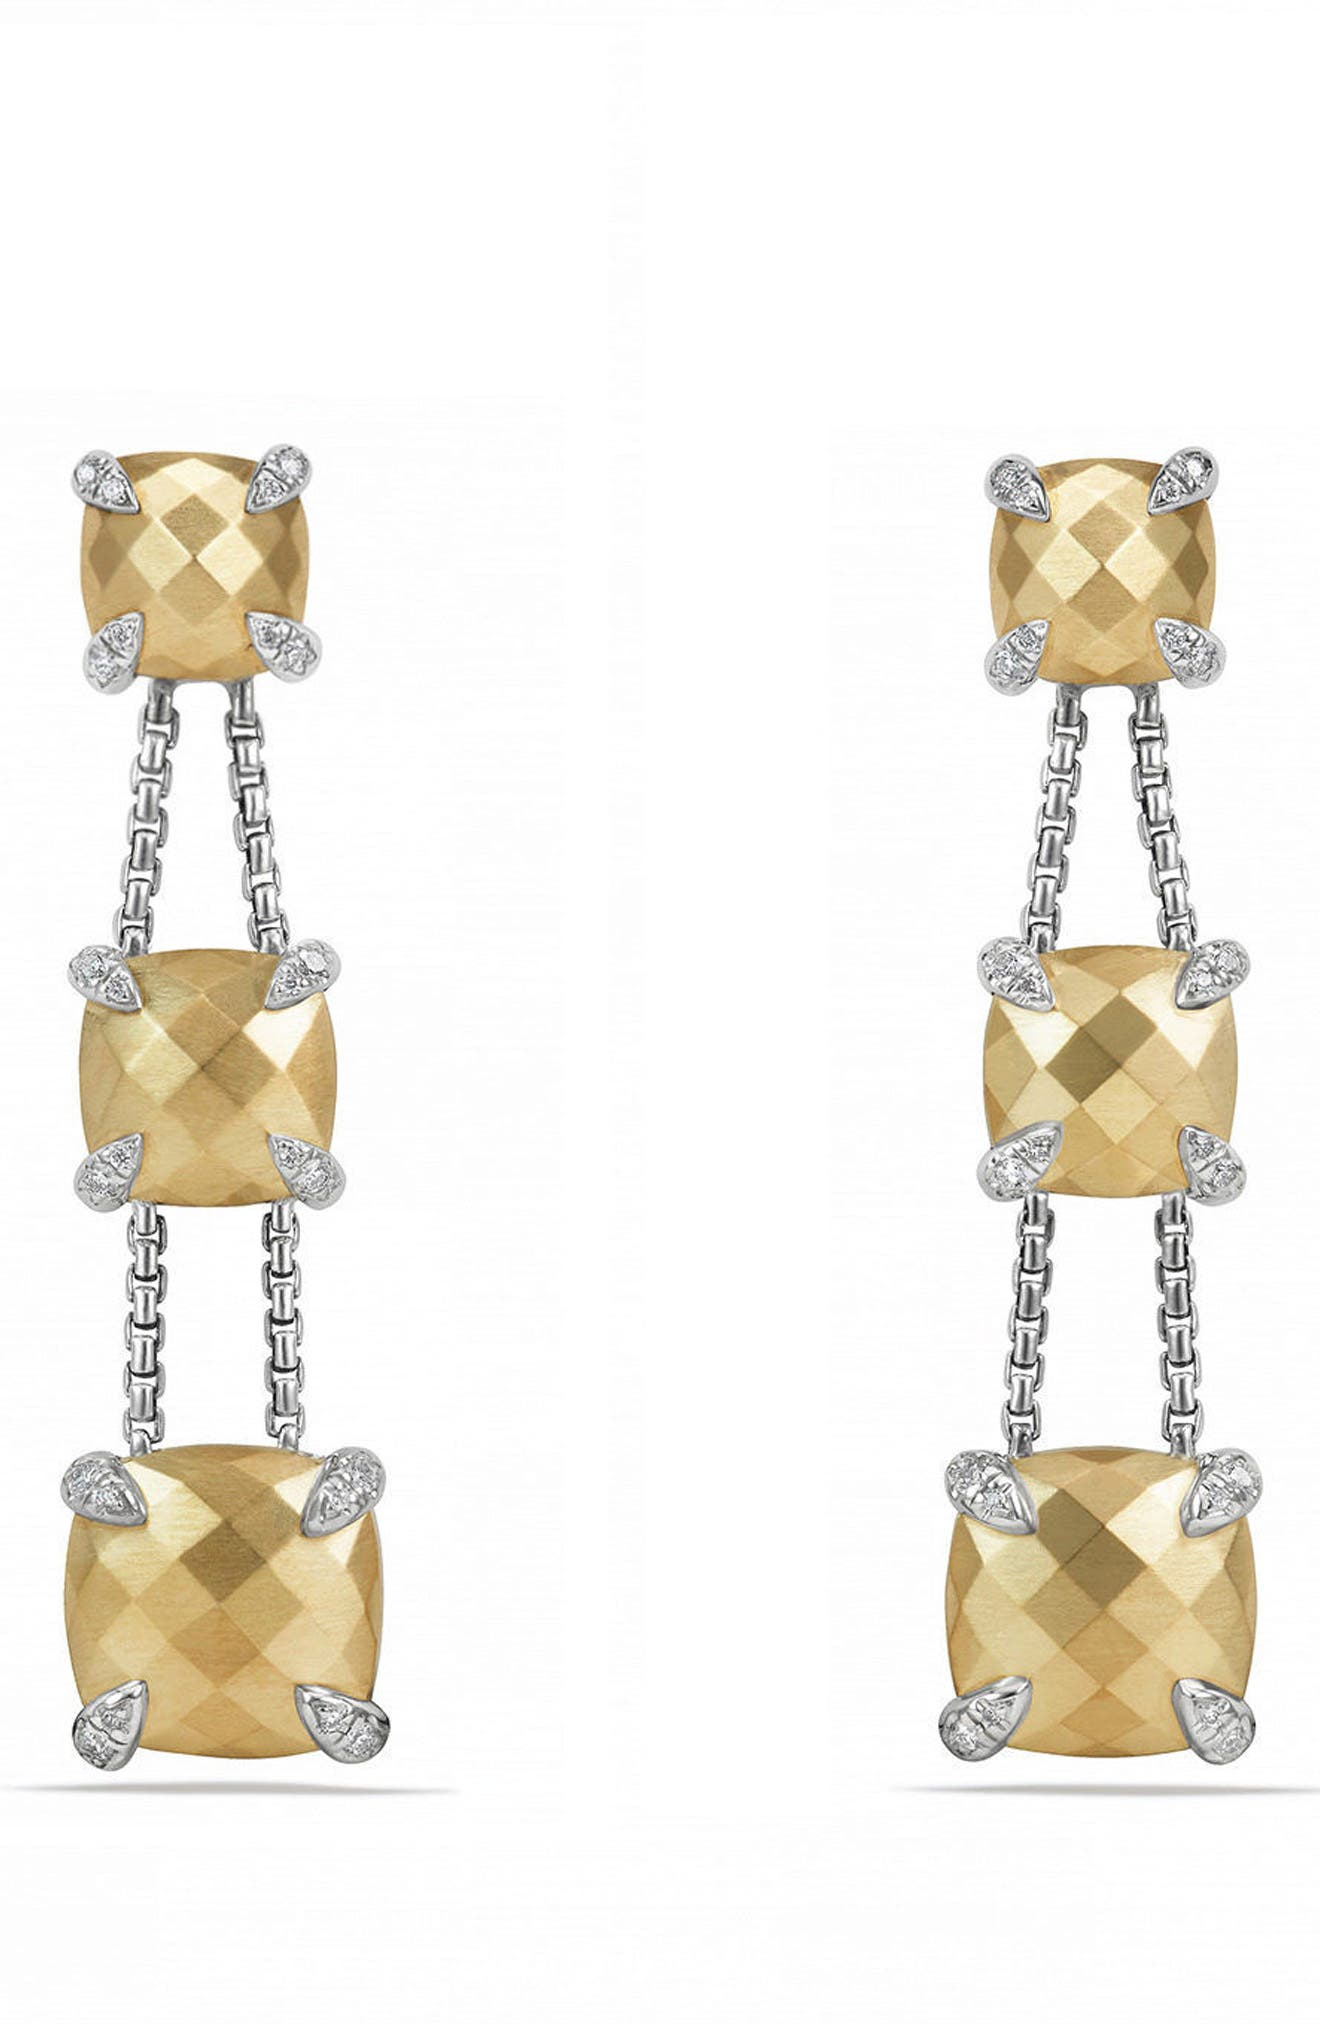 DAVID YURMAN Châtelaine Drop Earrings with Diamonds & 18K Gold